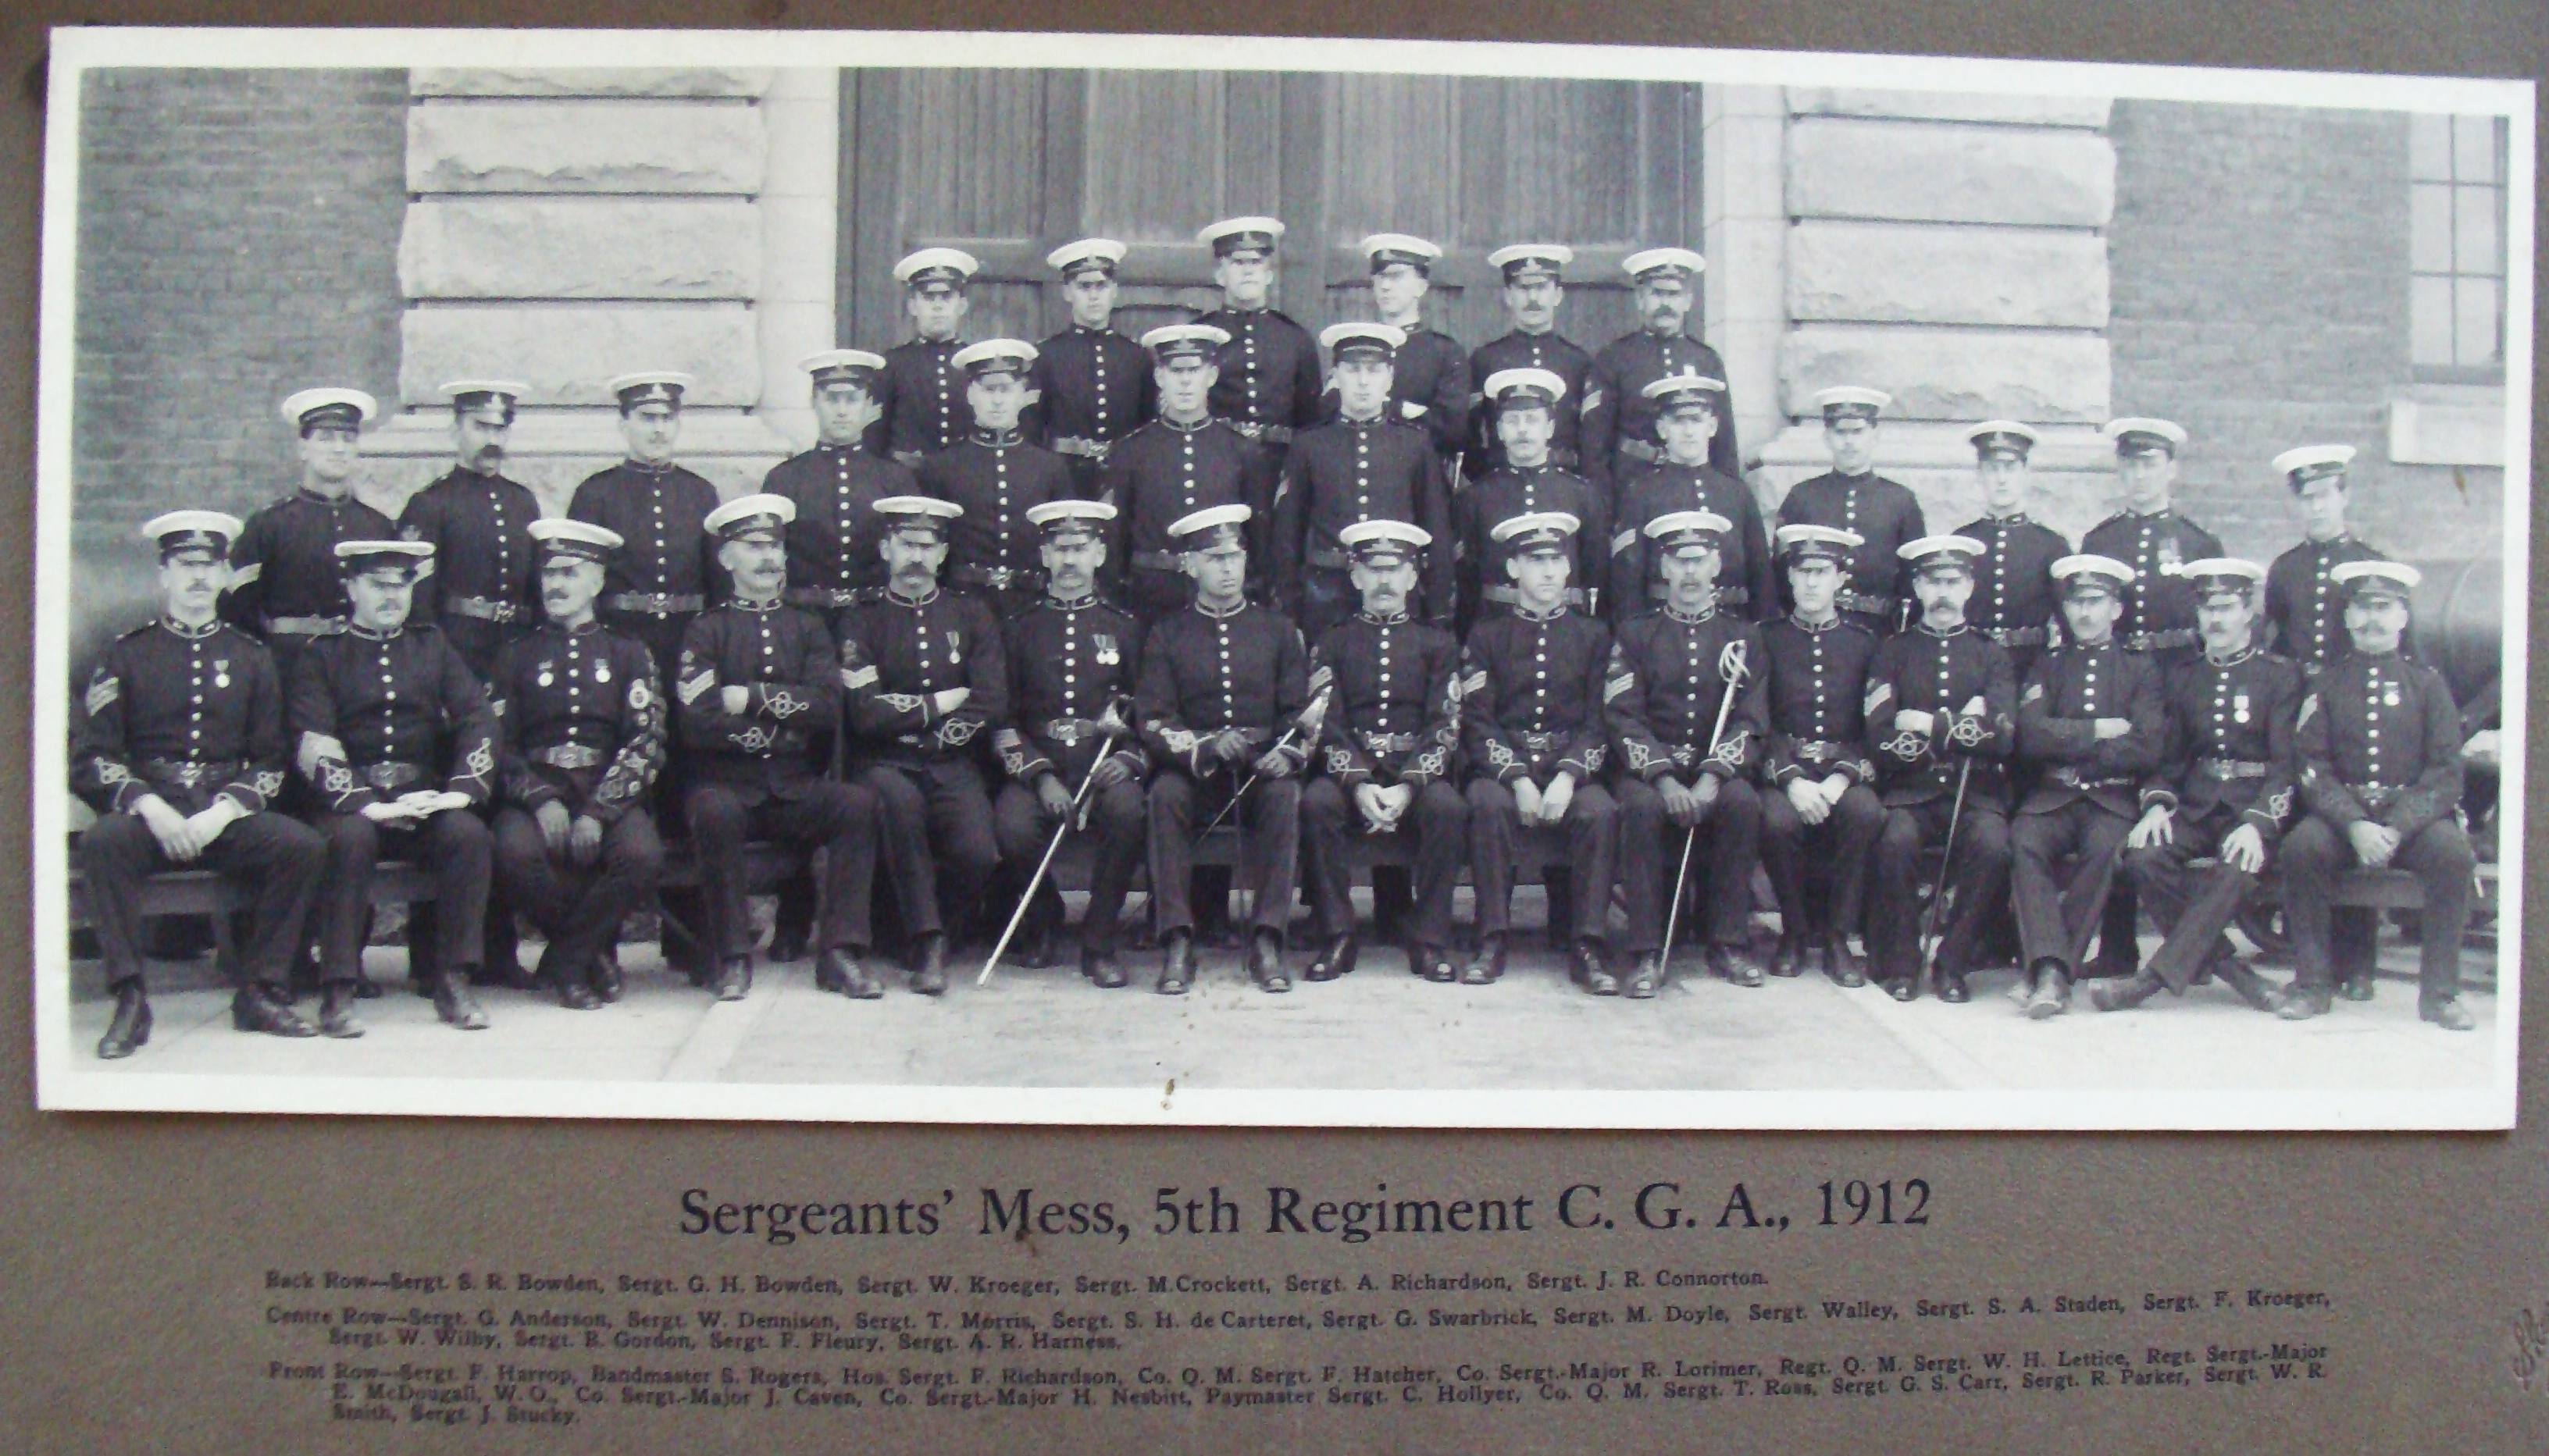 Sergeants' Mess, 5th Regiment